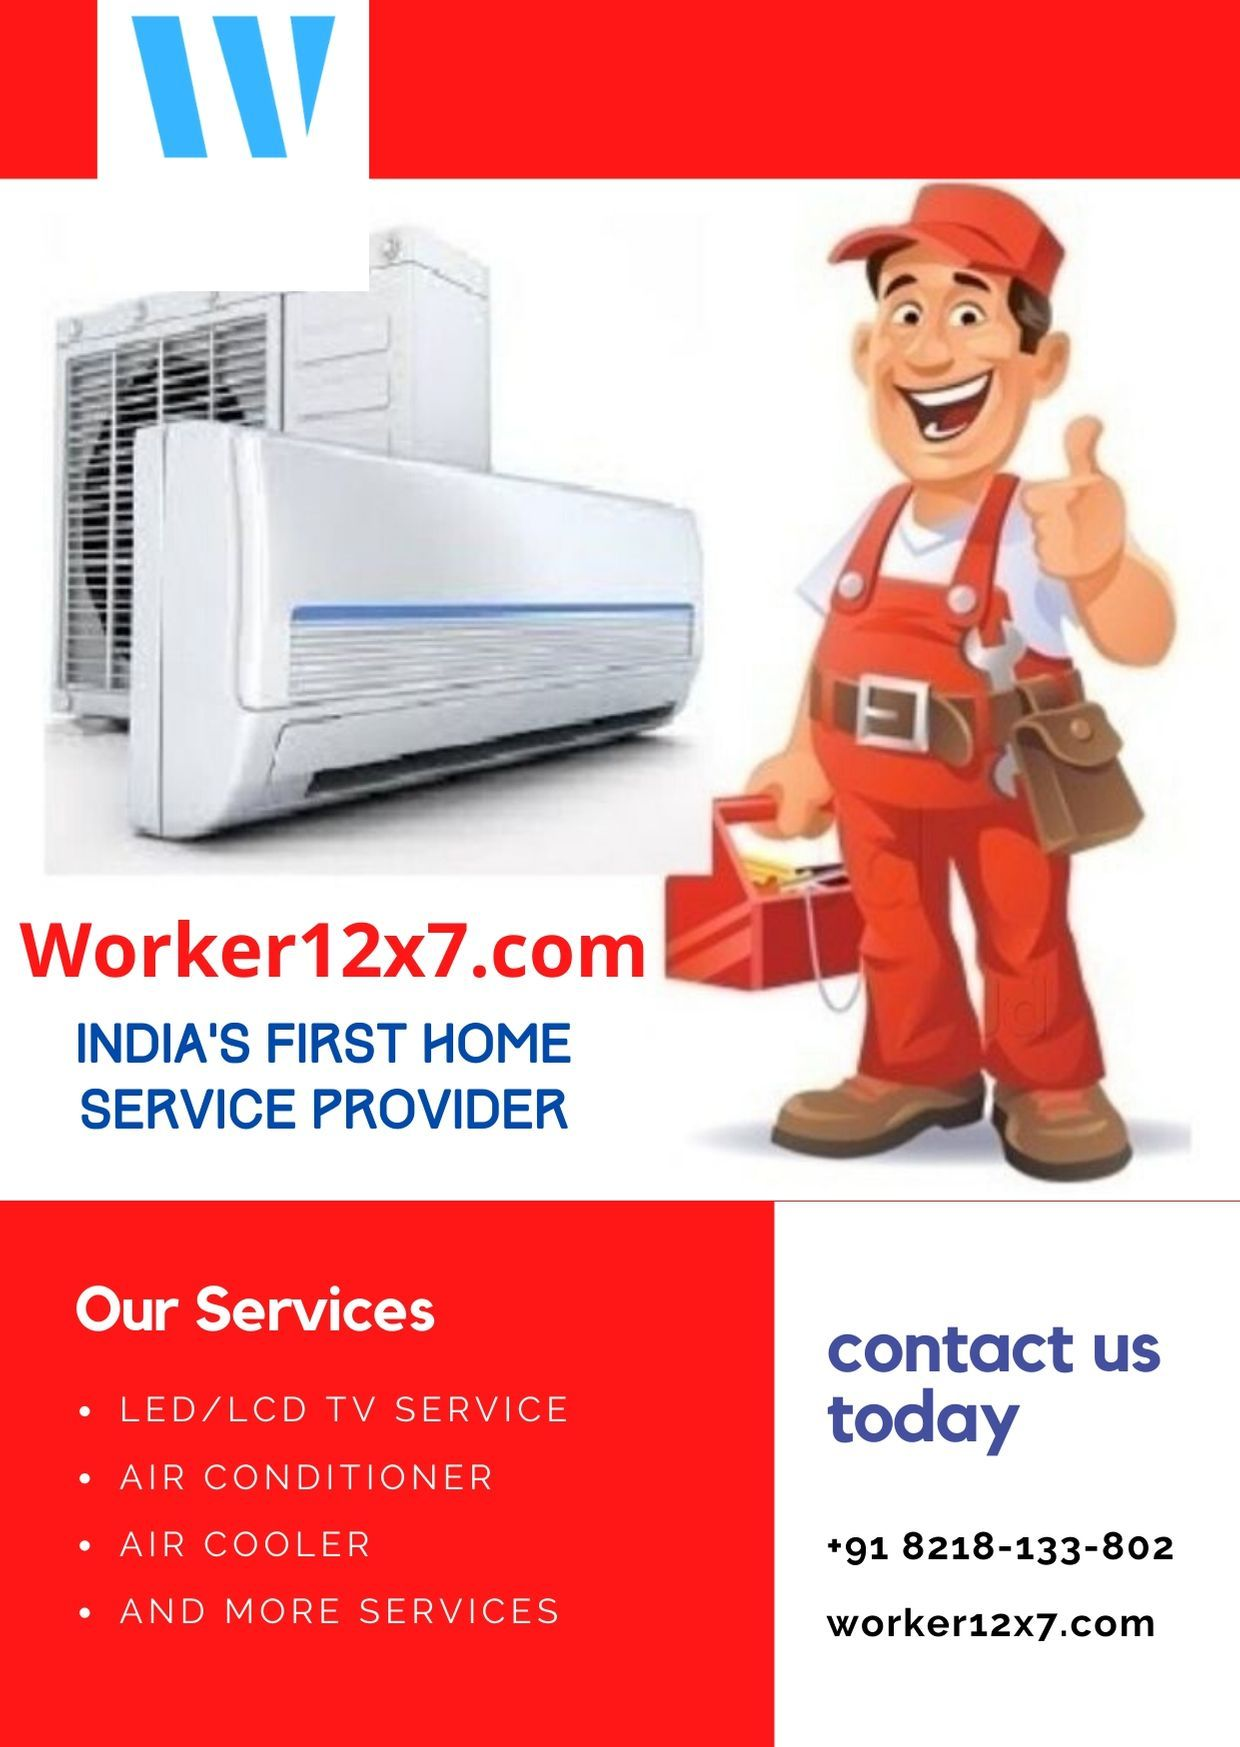 Worker12x7 Home Service Provider in 2020 Air conditioner